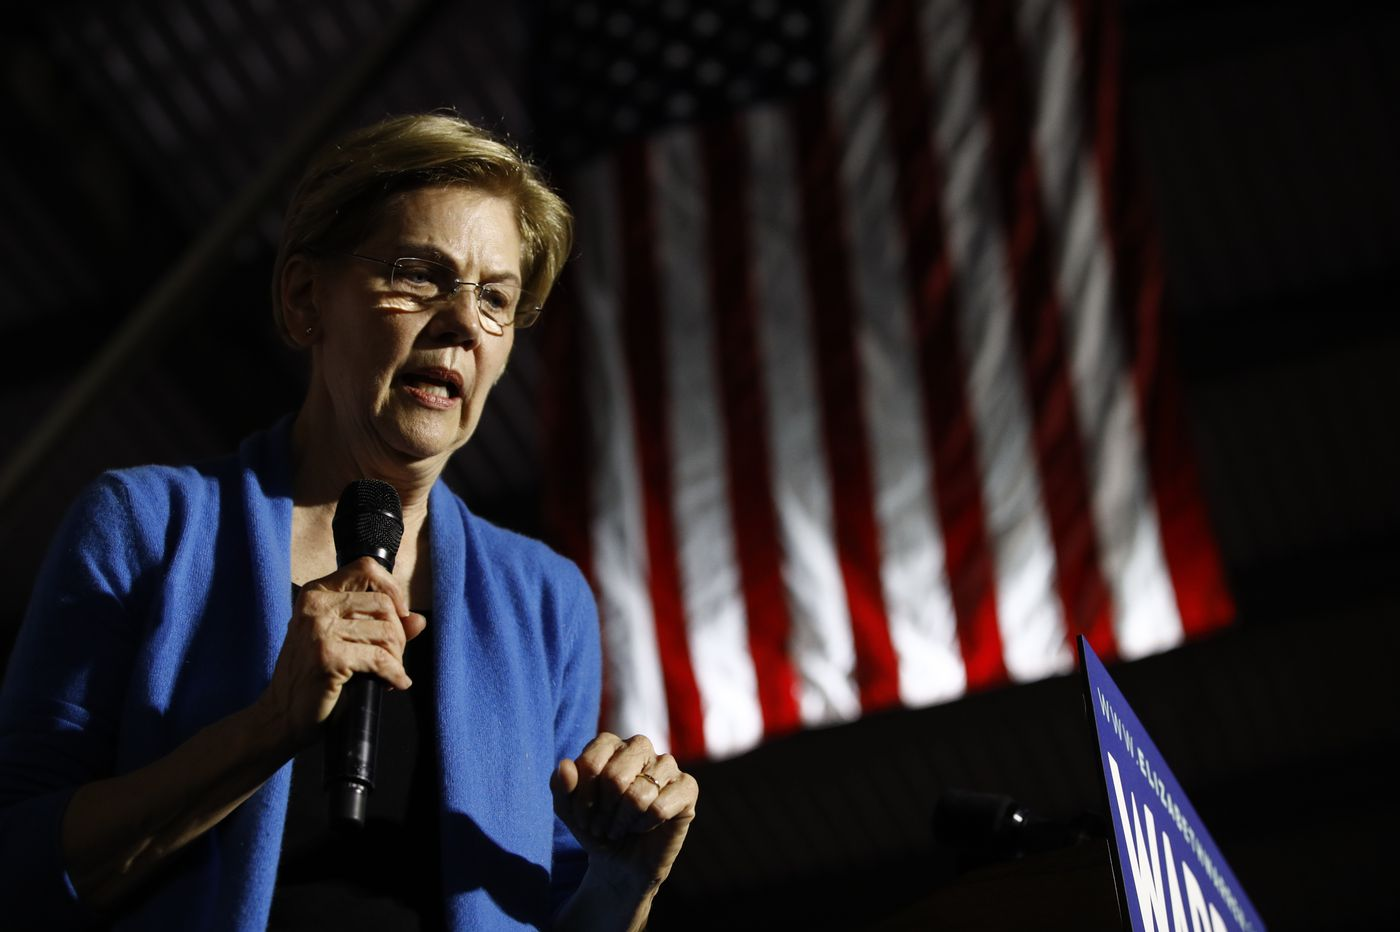 As Elizabeth Warren drops out, supporters feel the chance to see a woman in the White House slip away again